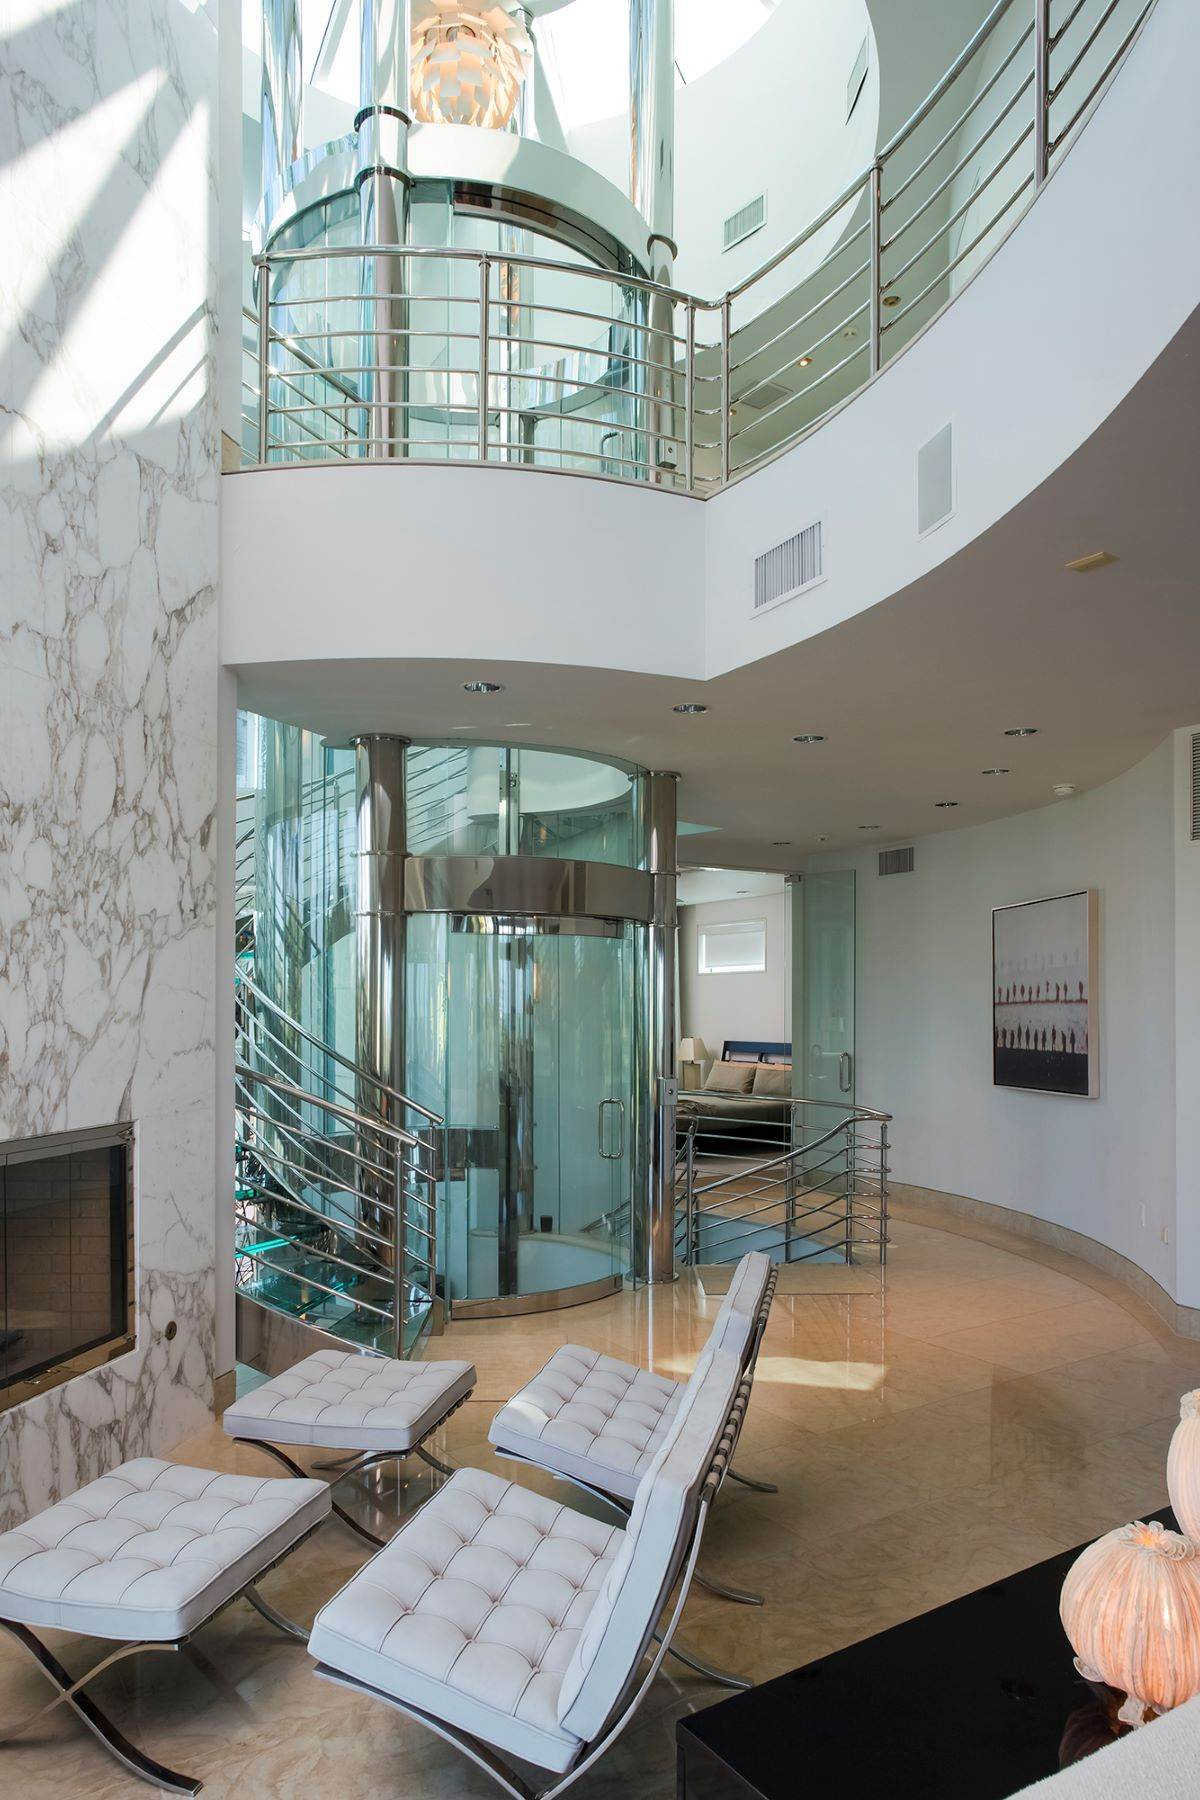 Florida beach pad with round glass elevator for 6m for Beach house elevator